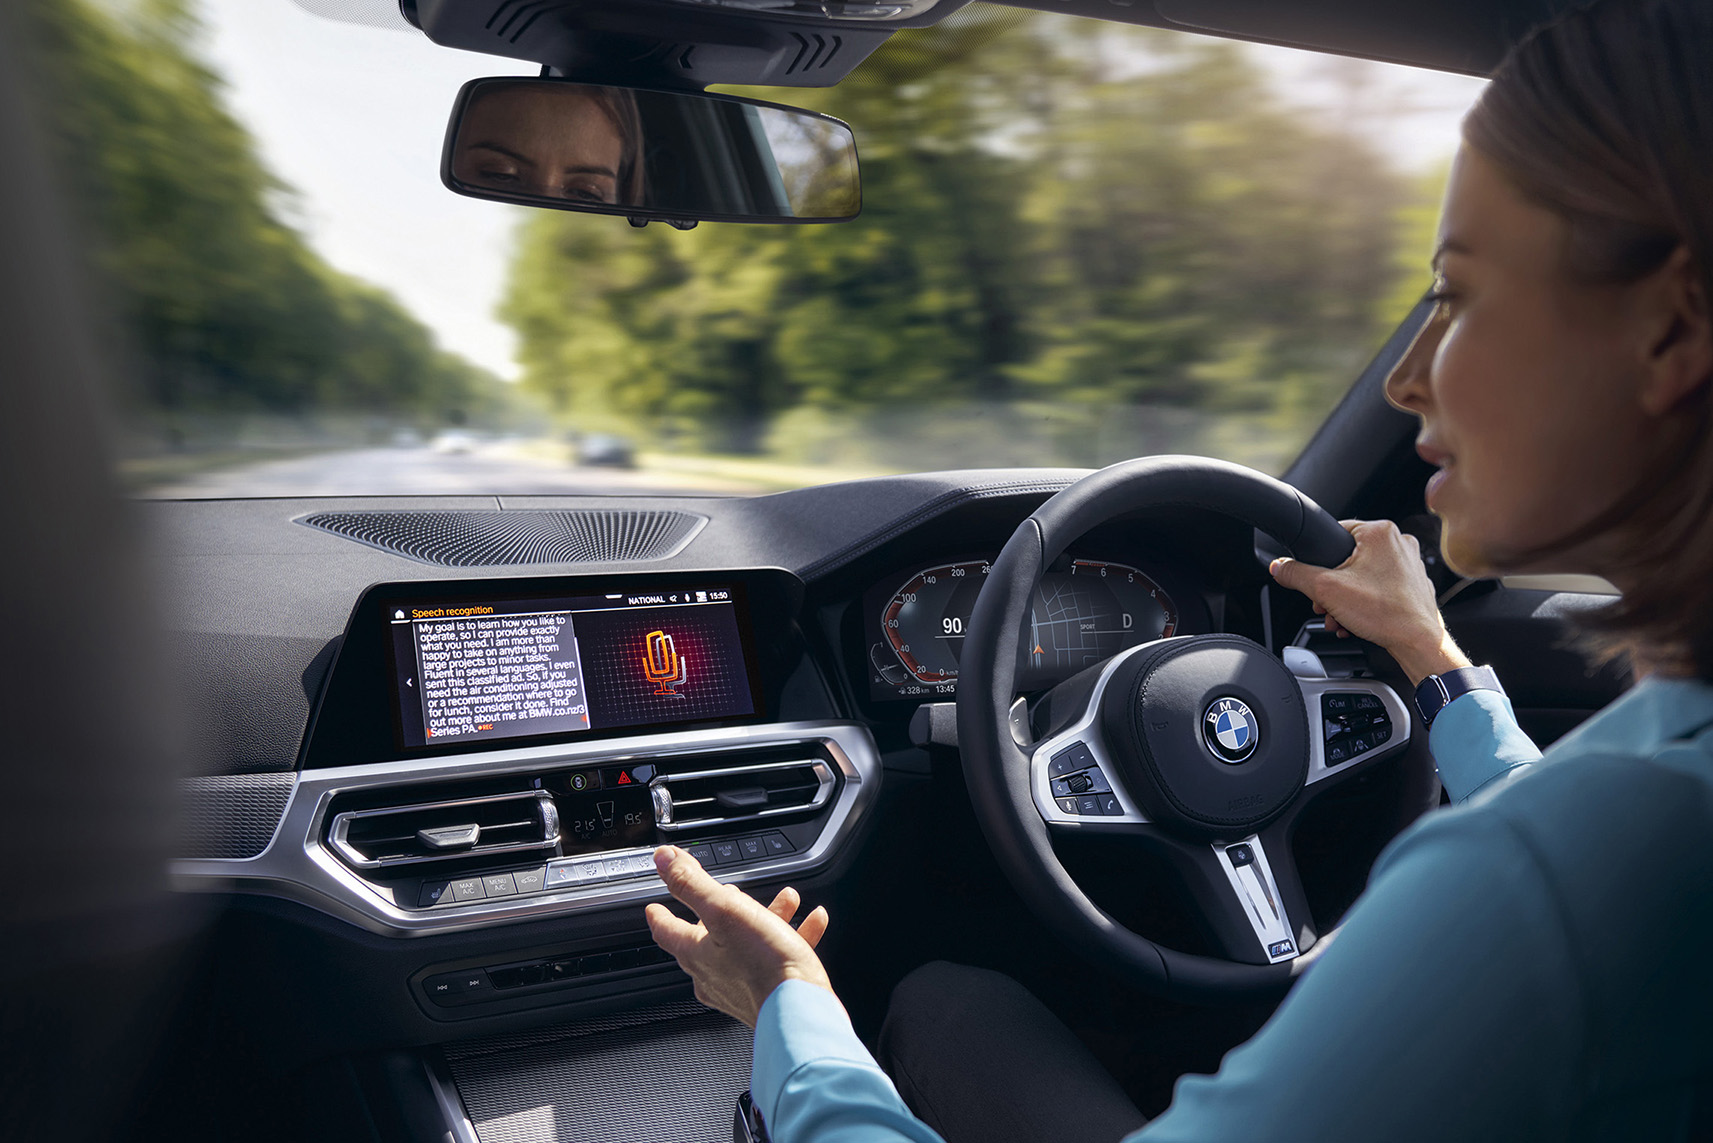 BMW's intelligent PA hopes Kiwis will help it get a job in BMW 3 Series campaign via Colenso BBDO